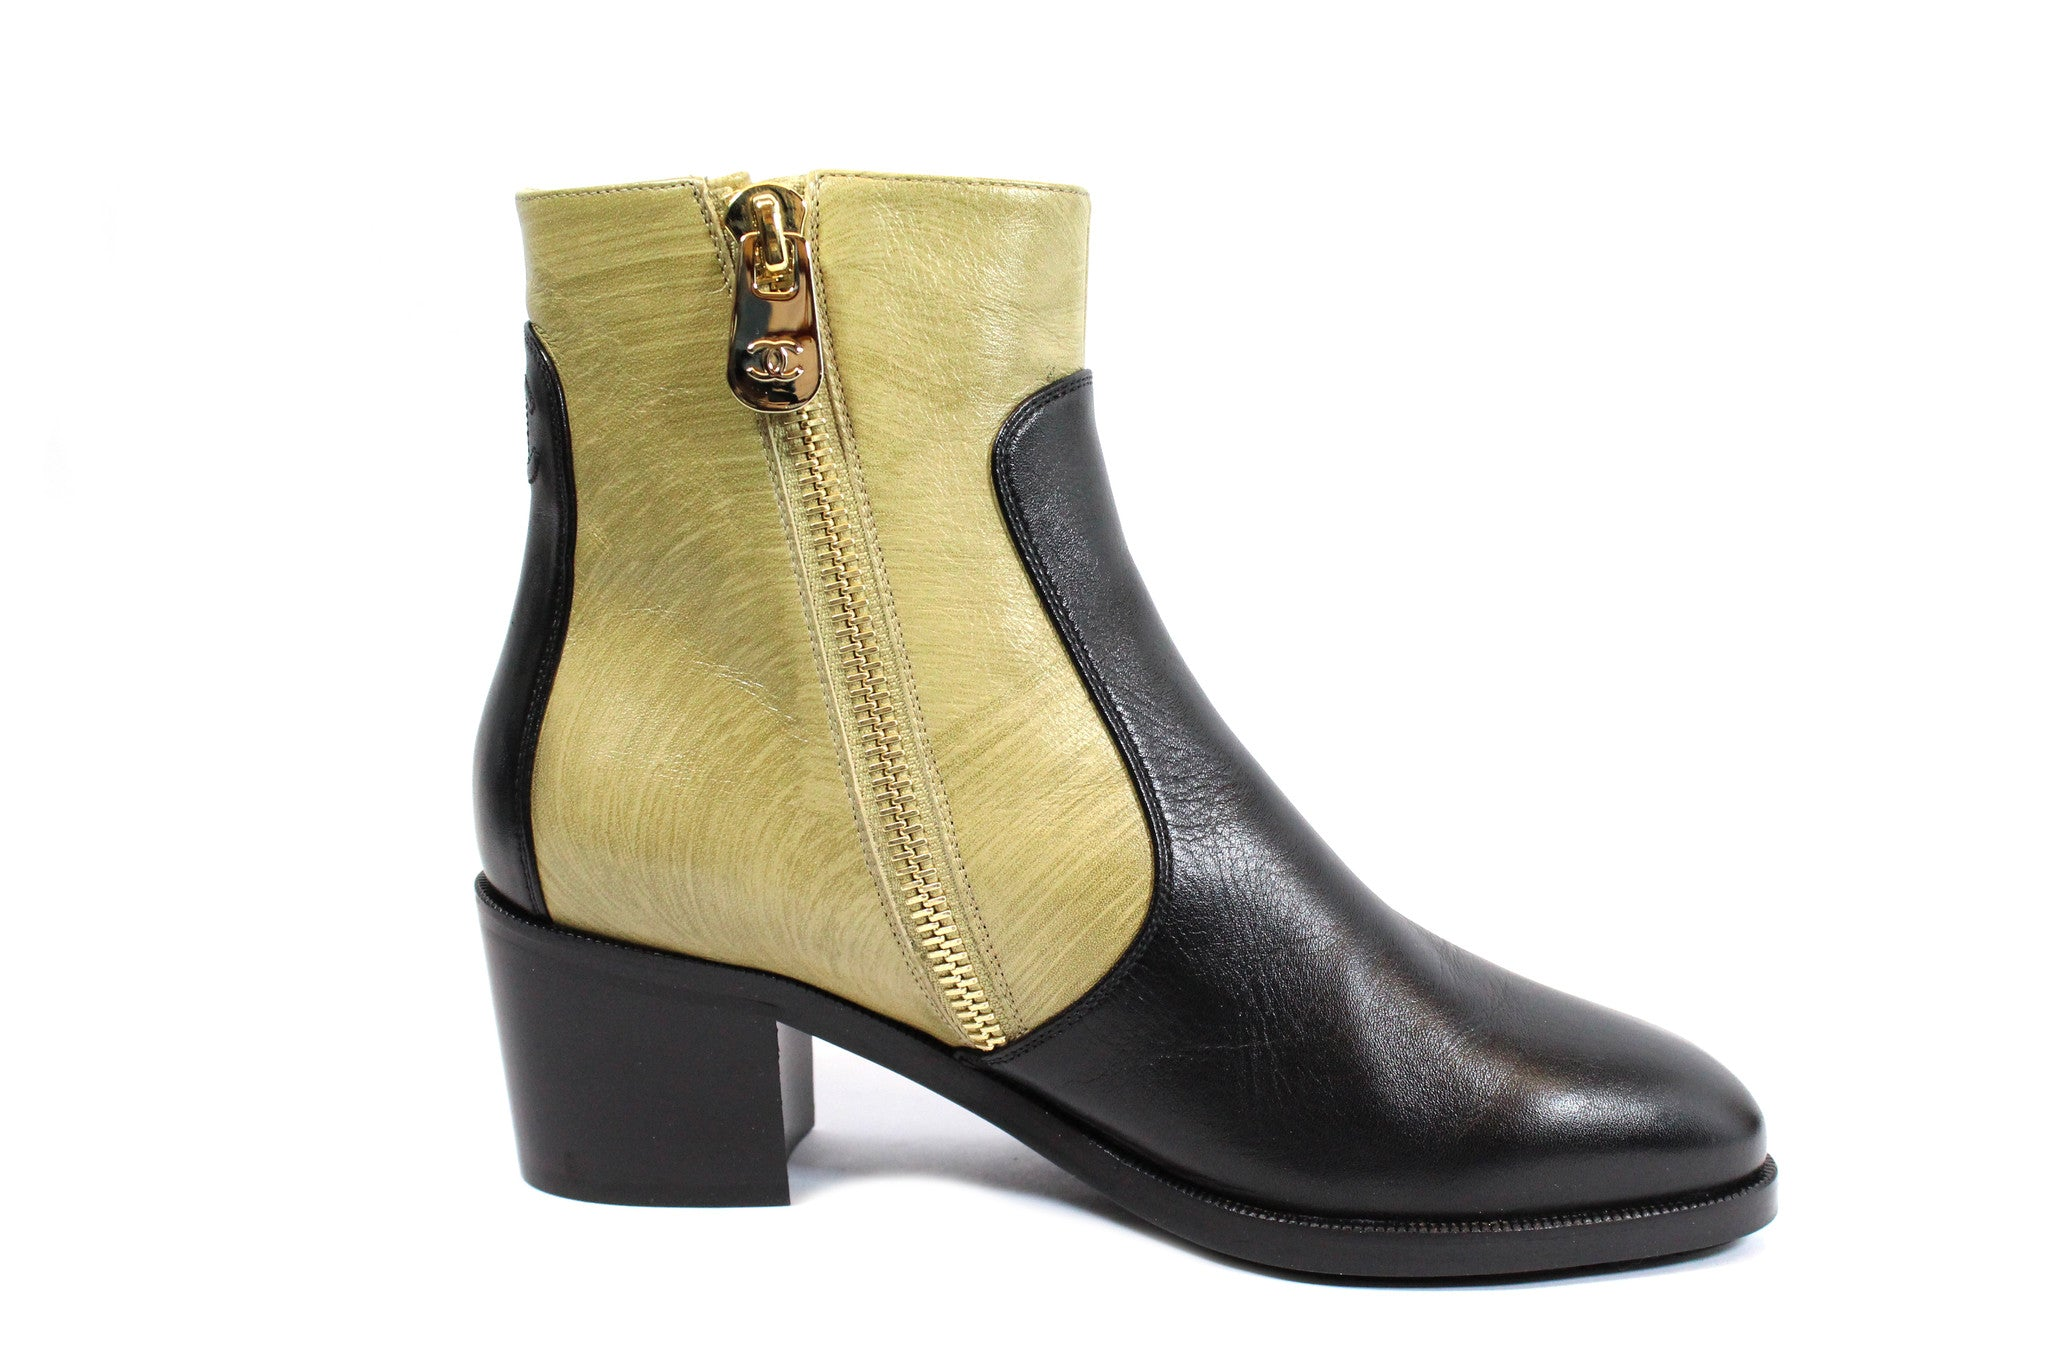 Chanel Two-tone Short Calfskin Boots (Size 38) - Encore Consignment - 3